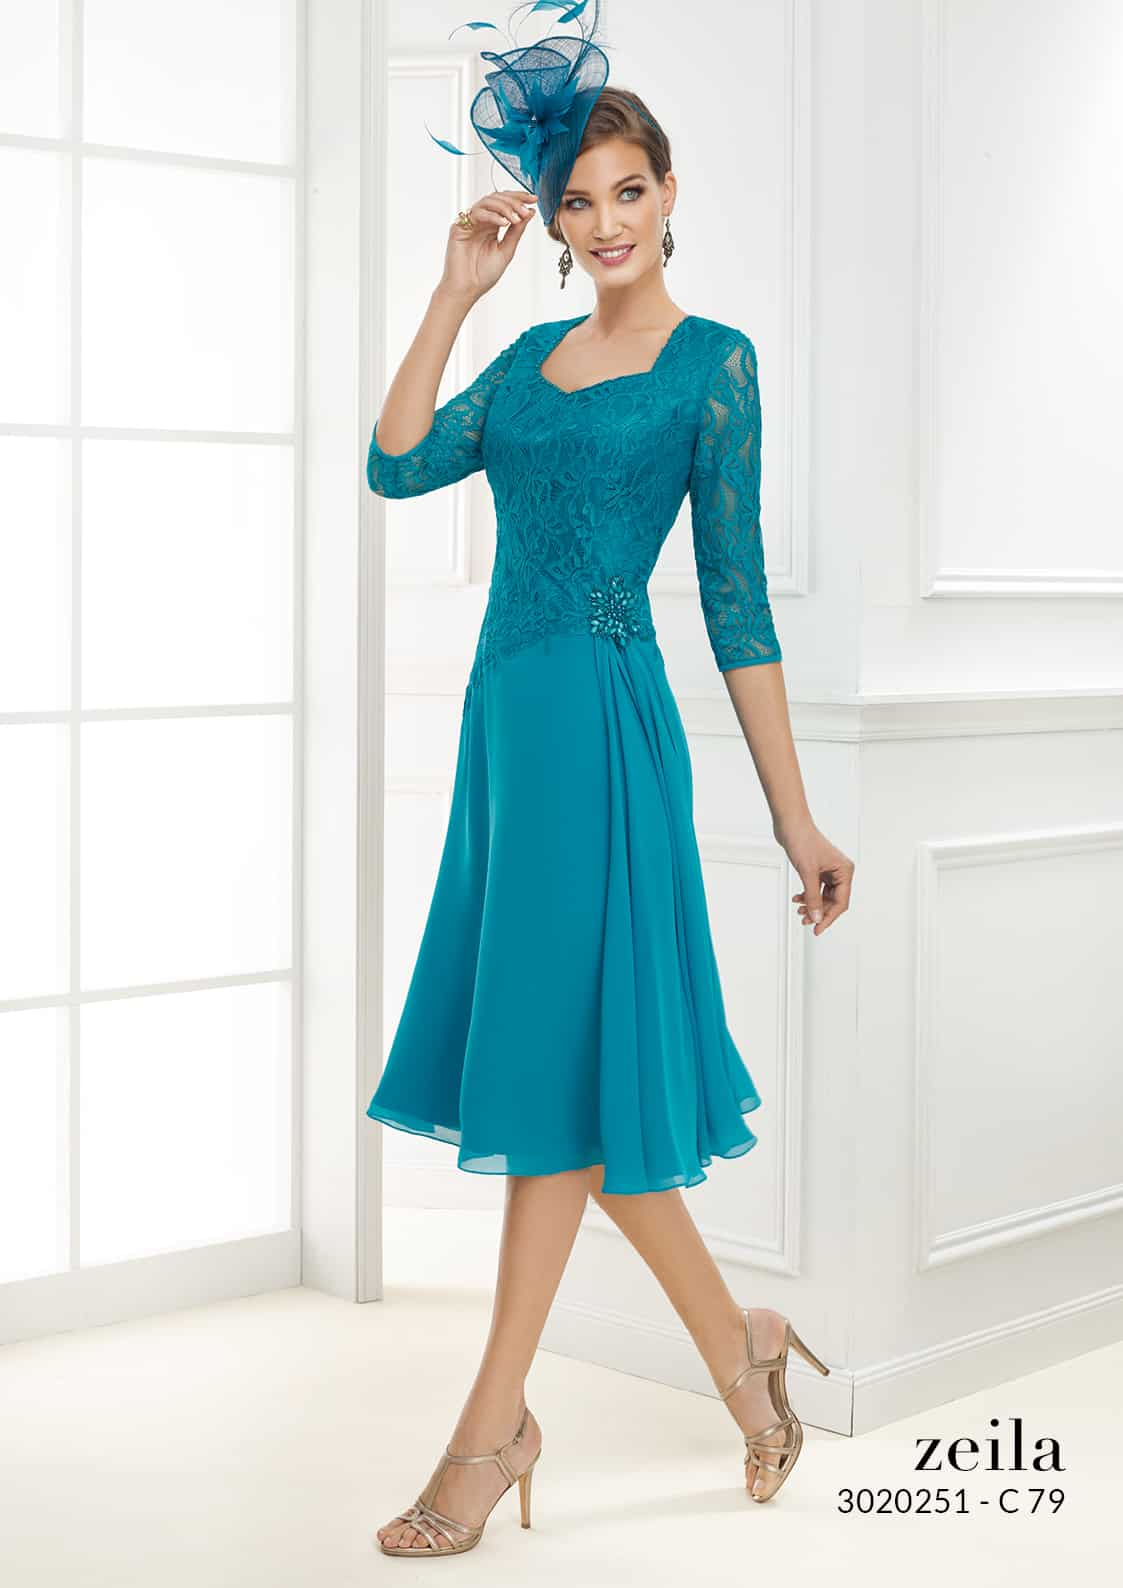 A-line style dress with lace bodice and lace sleeves.